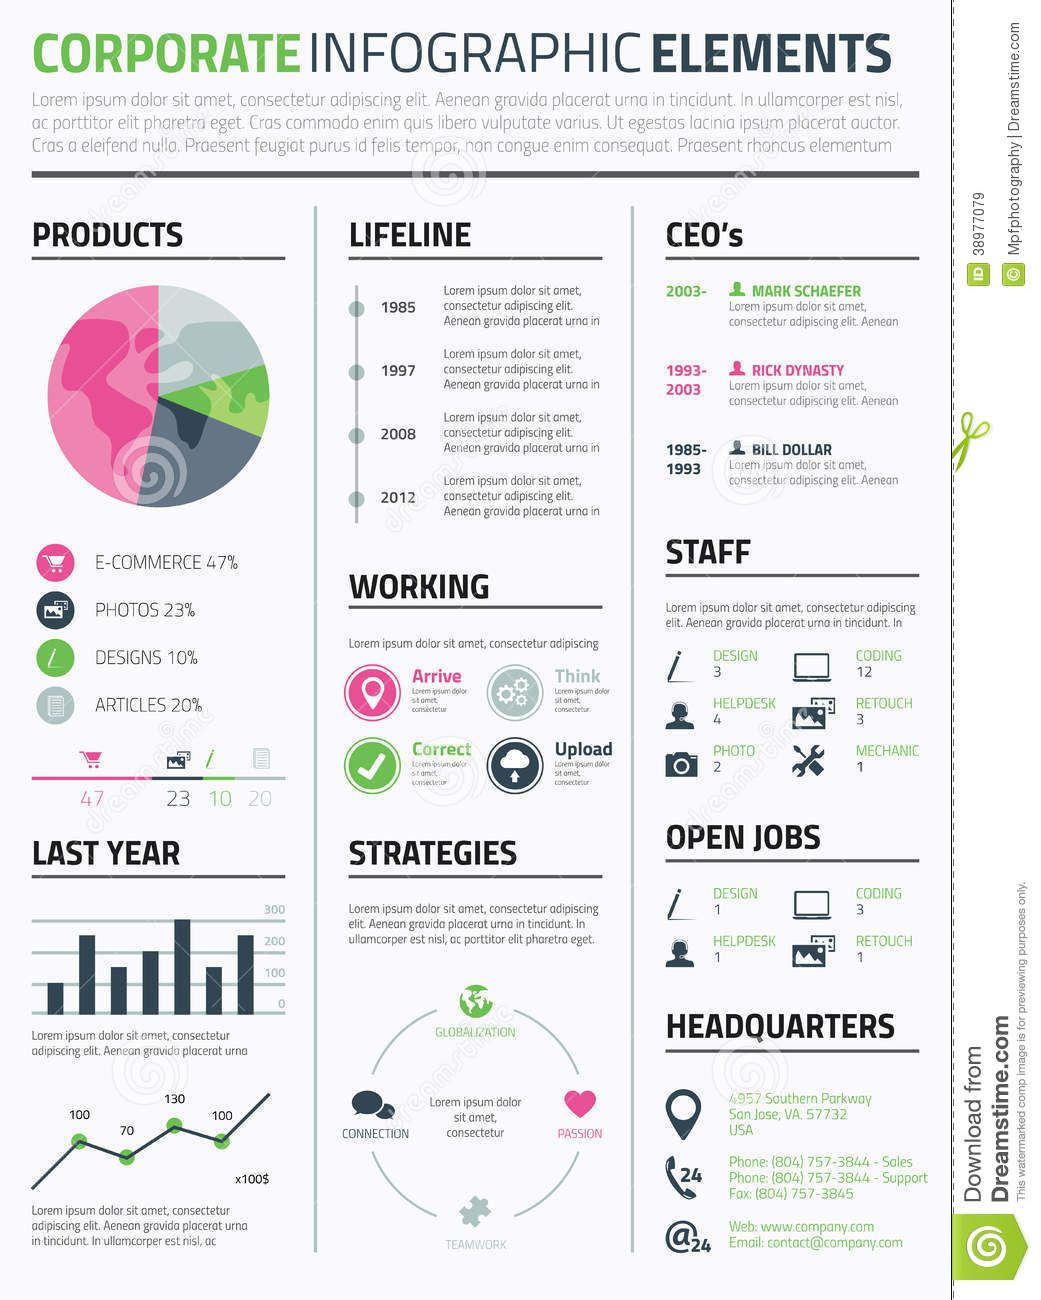 Corporate Infographic Resume Elements Template To Display Data Vector Infographic Resume Management Infographic Infographic